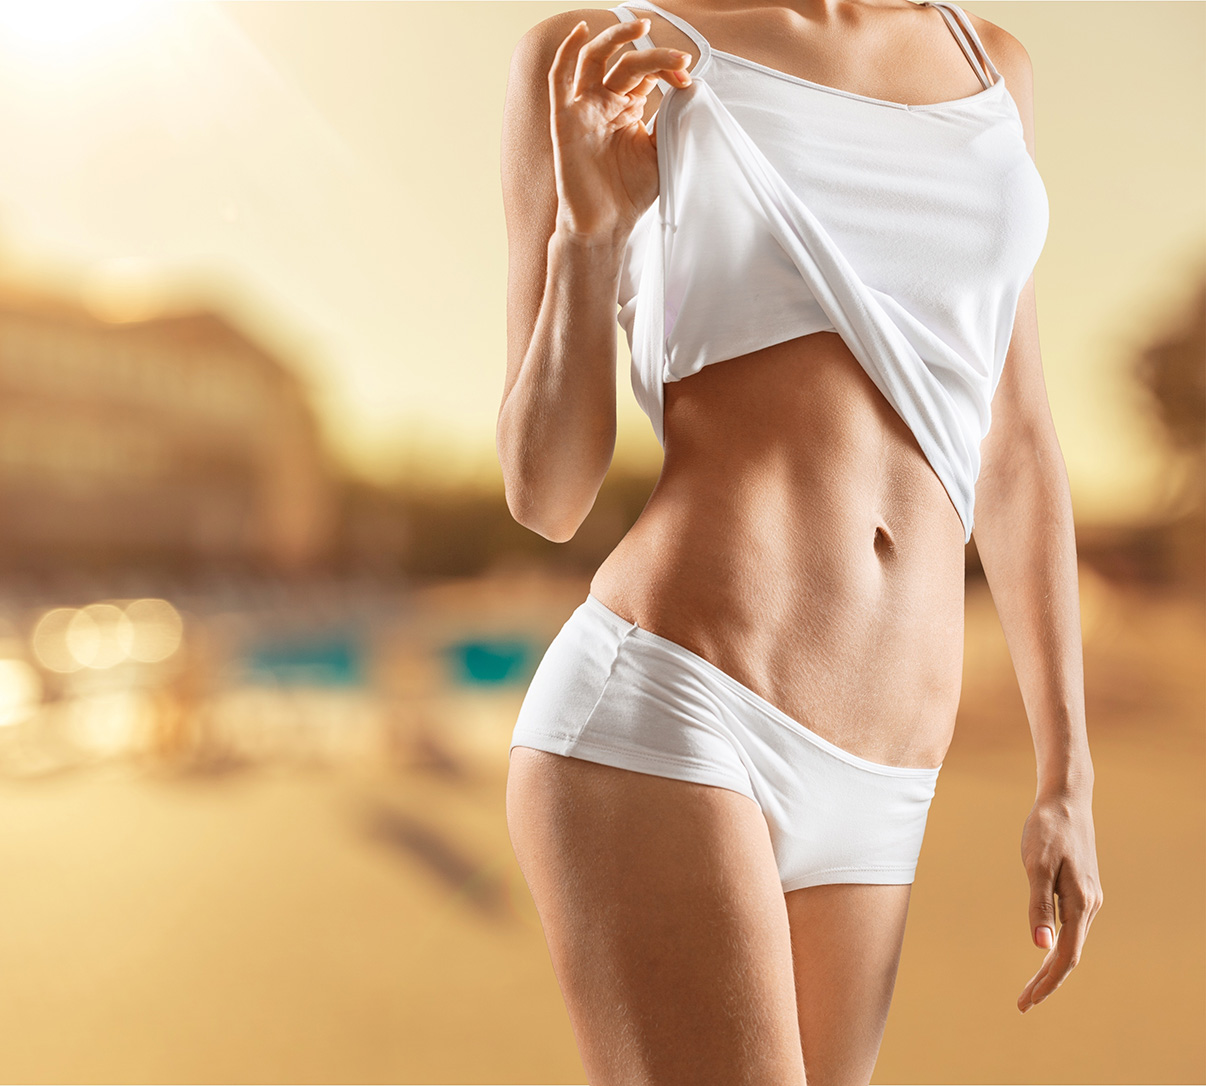 How To Choose Between Liposuction VS Tummy Tuck For A Flat Stomach-3